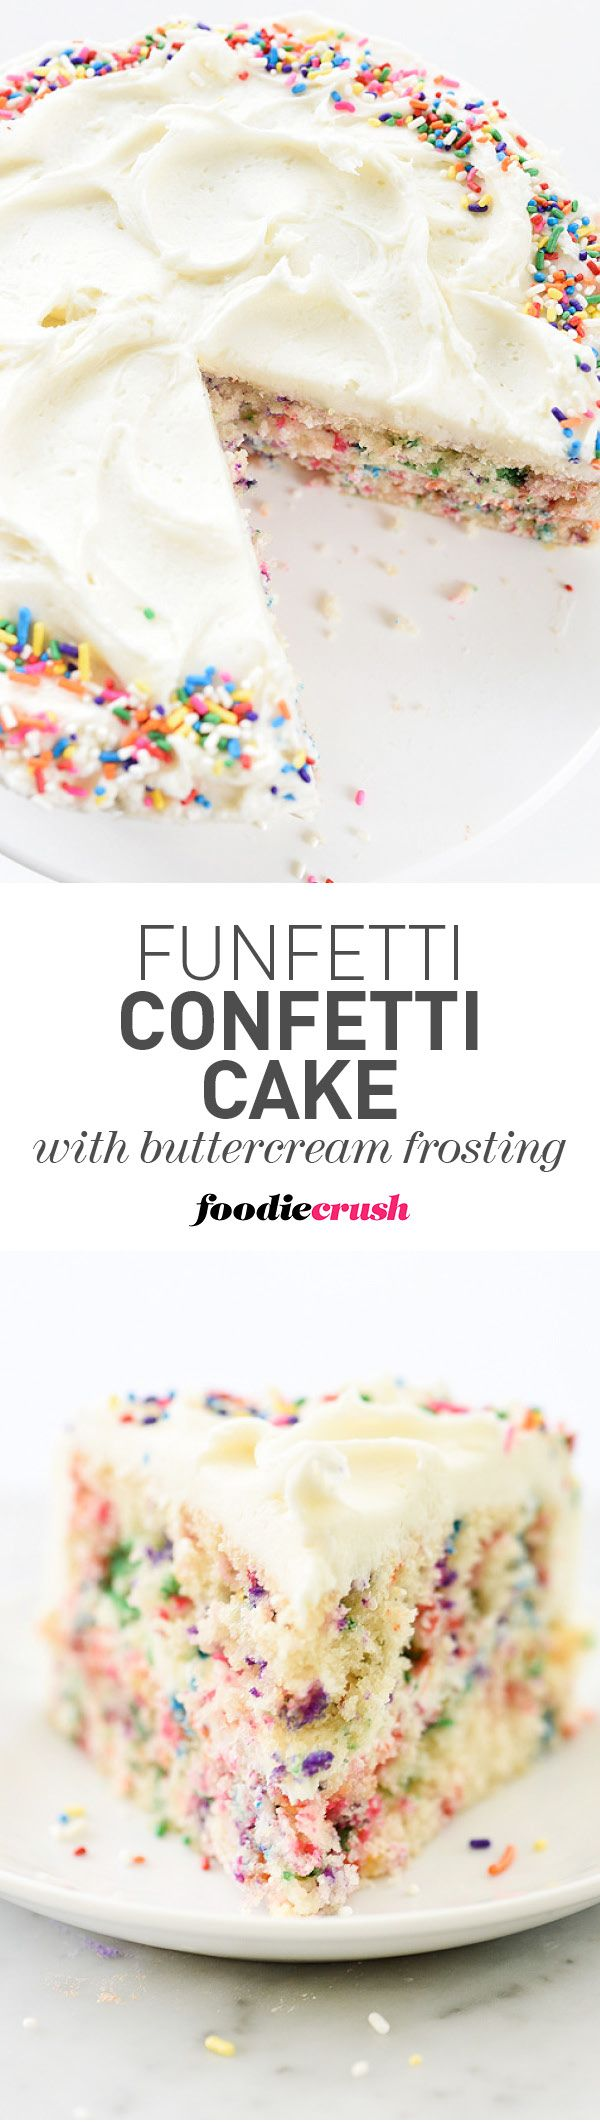 This colorful #funfetti cake has one of the tenderest crumbs I've ever had in a homemade cake and the buttercream frosting simply takes it over the top | foodiecrush.com #cake #sprinkles #funfetti #confetti